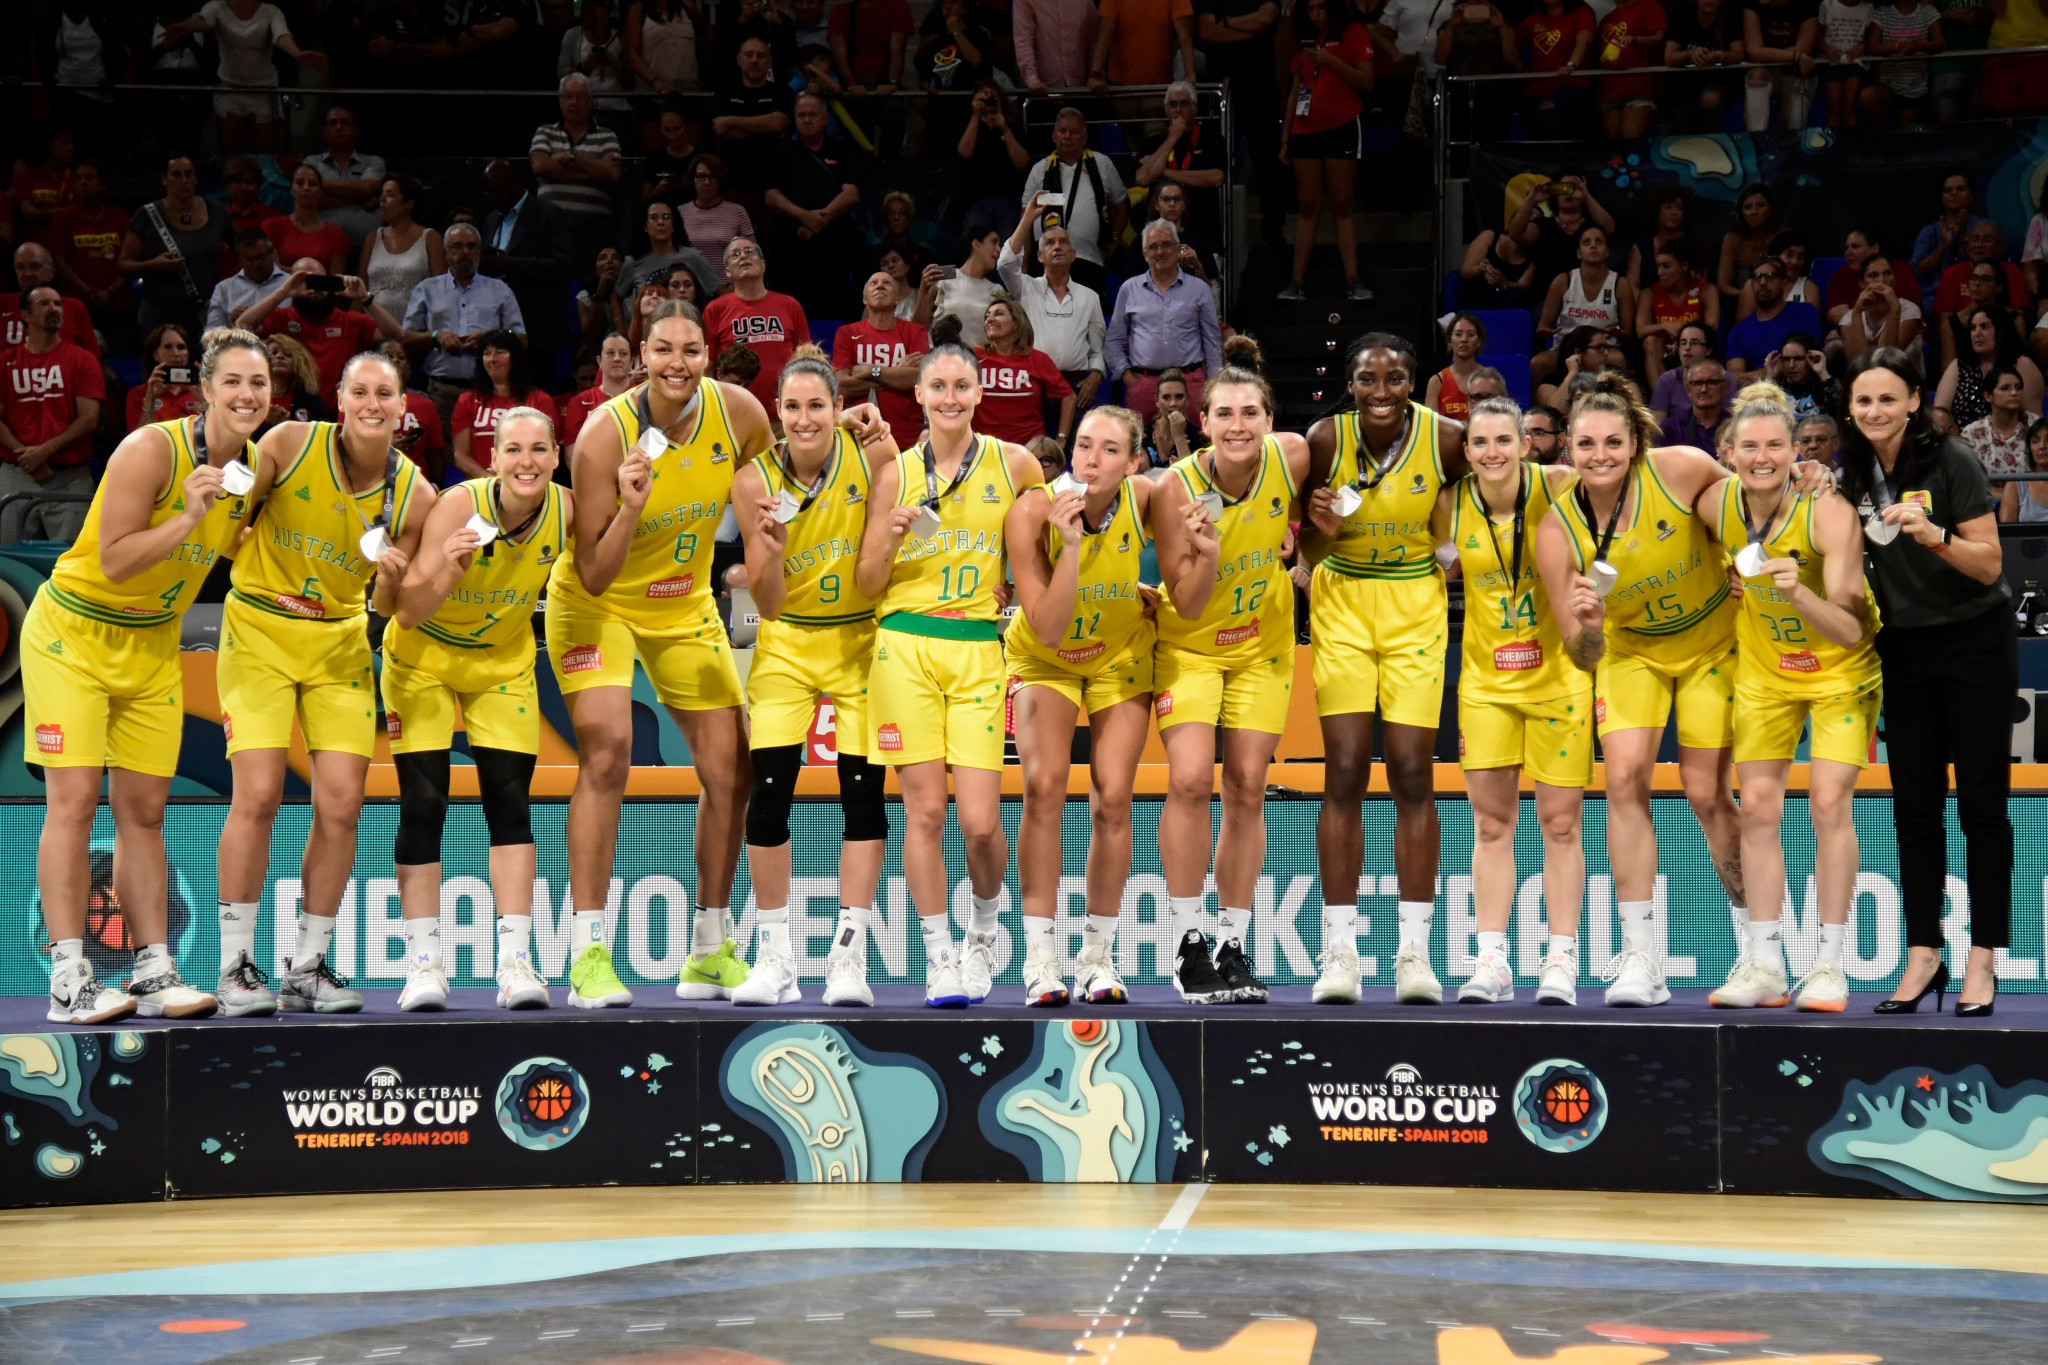 Organising Committee formed for 2022 Women's Basketball World Cup in Australia